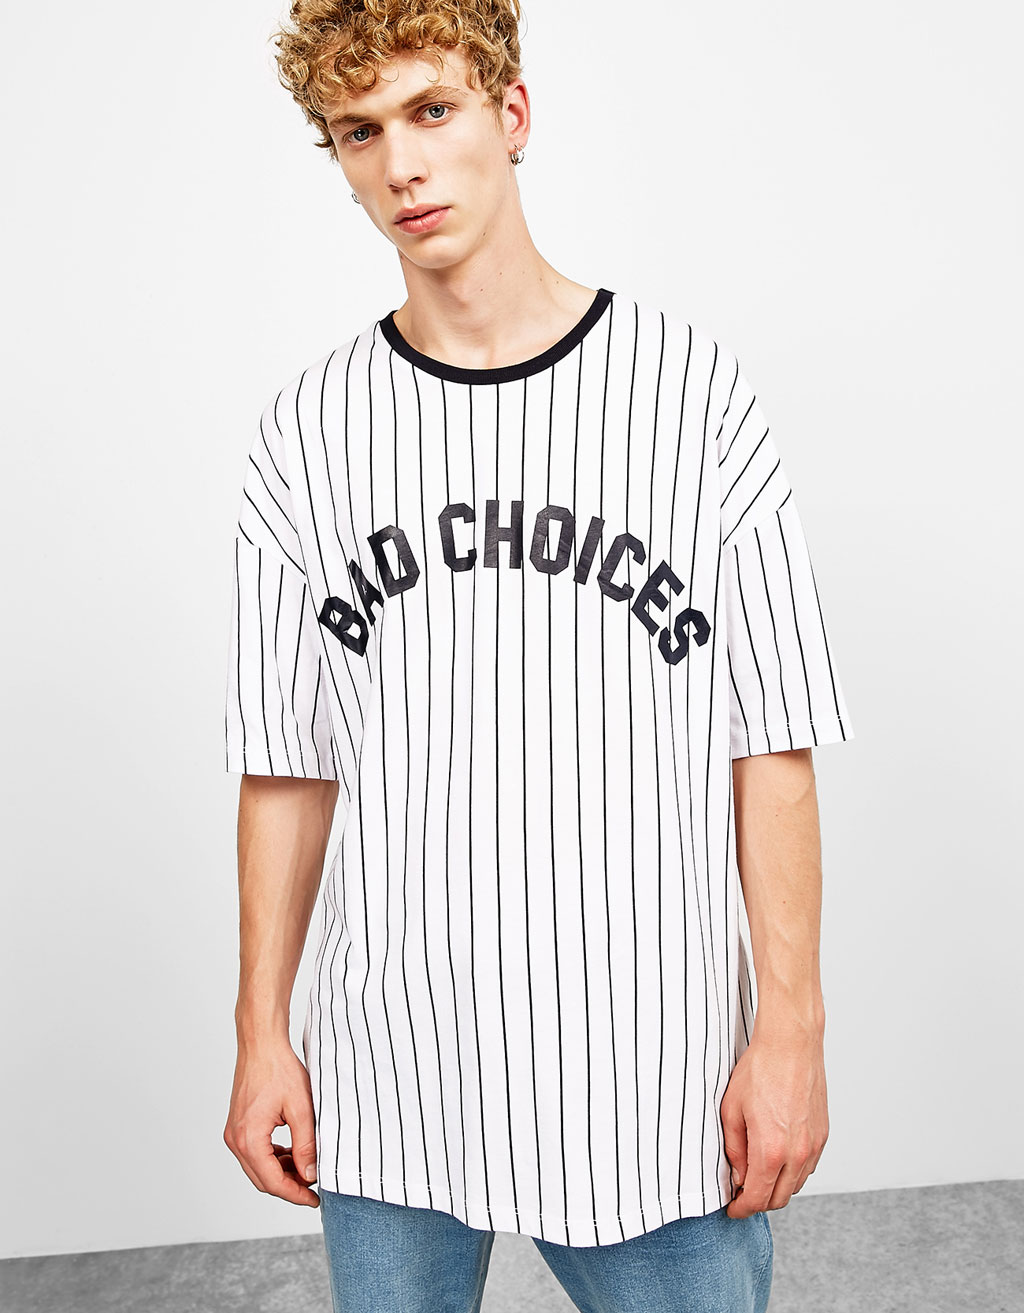 Boxy fit vertical striped text T-shirt